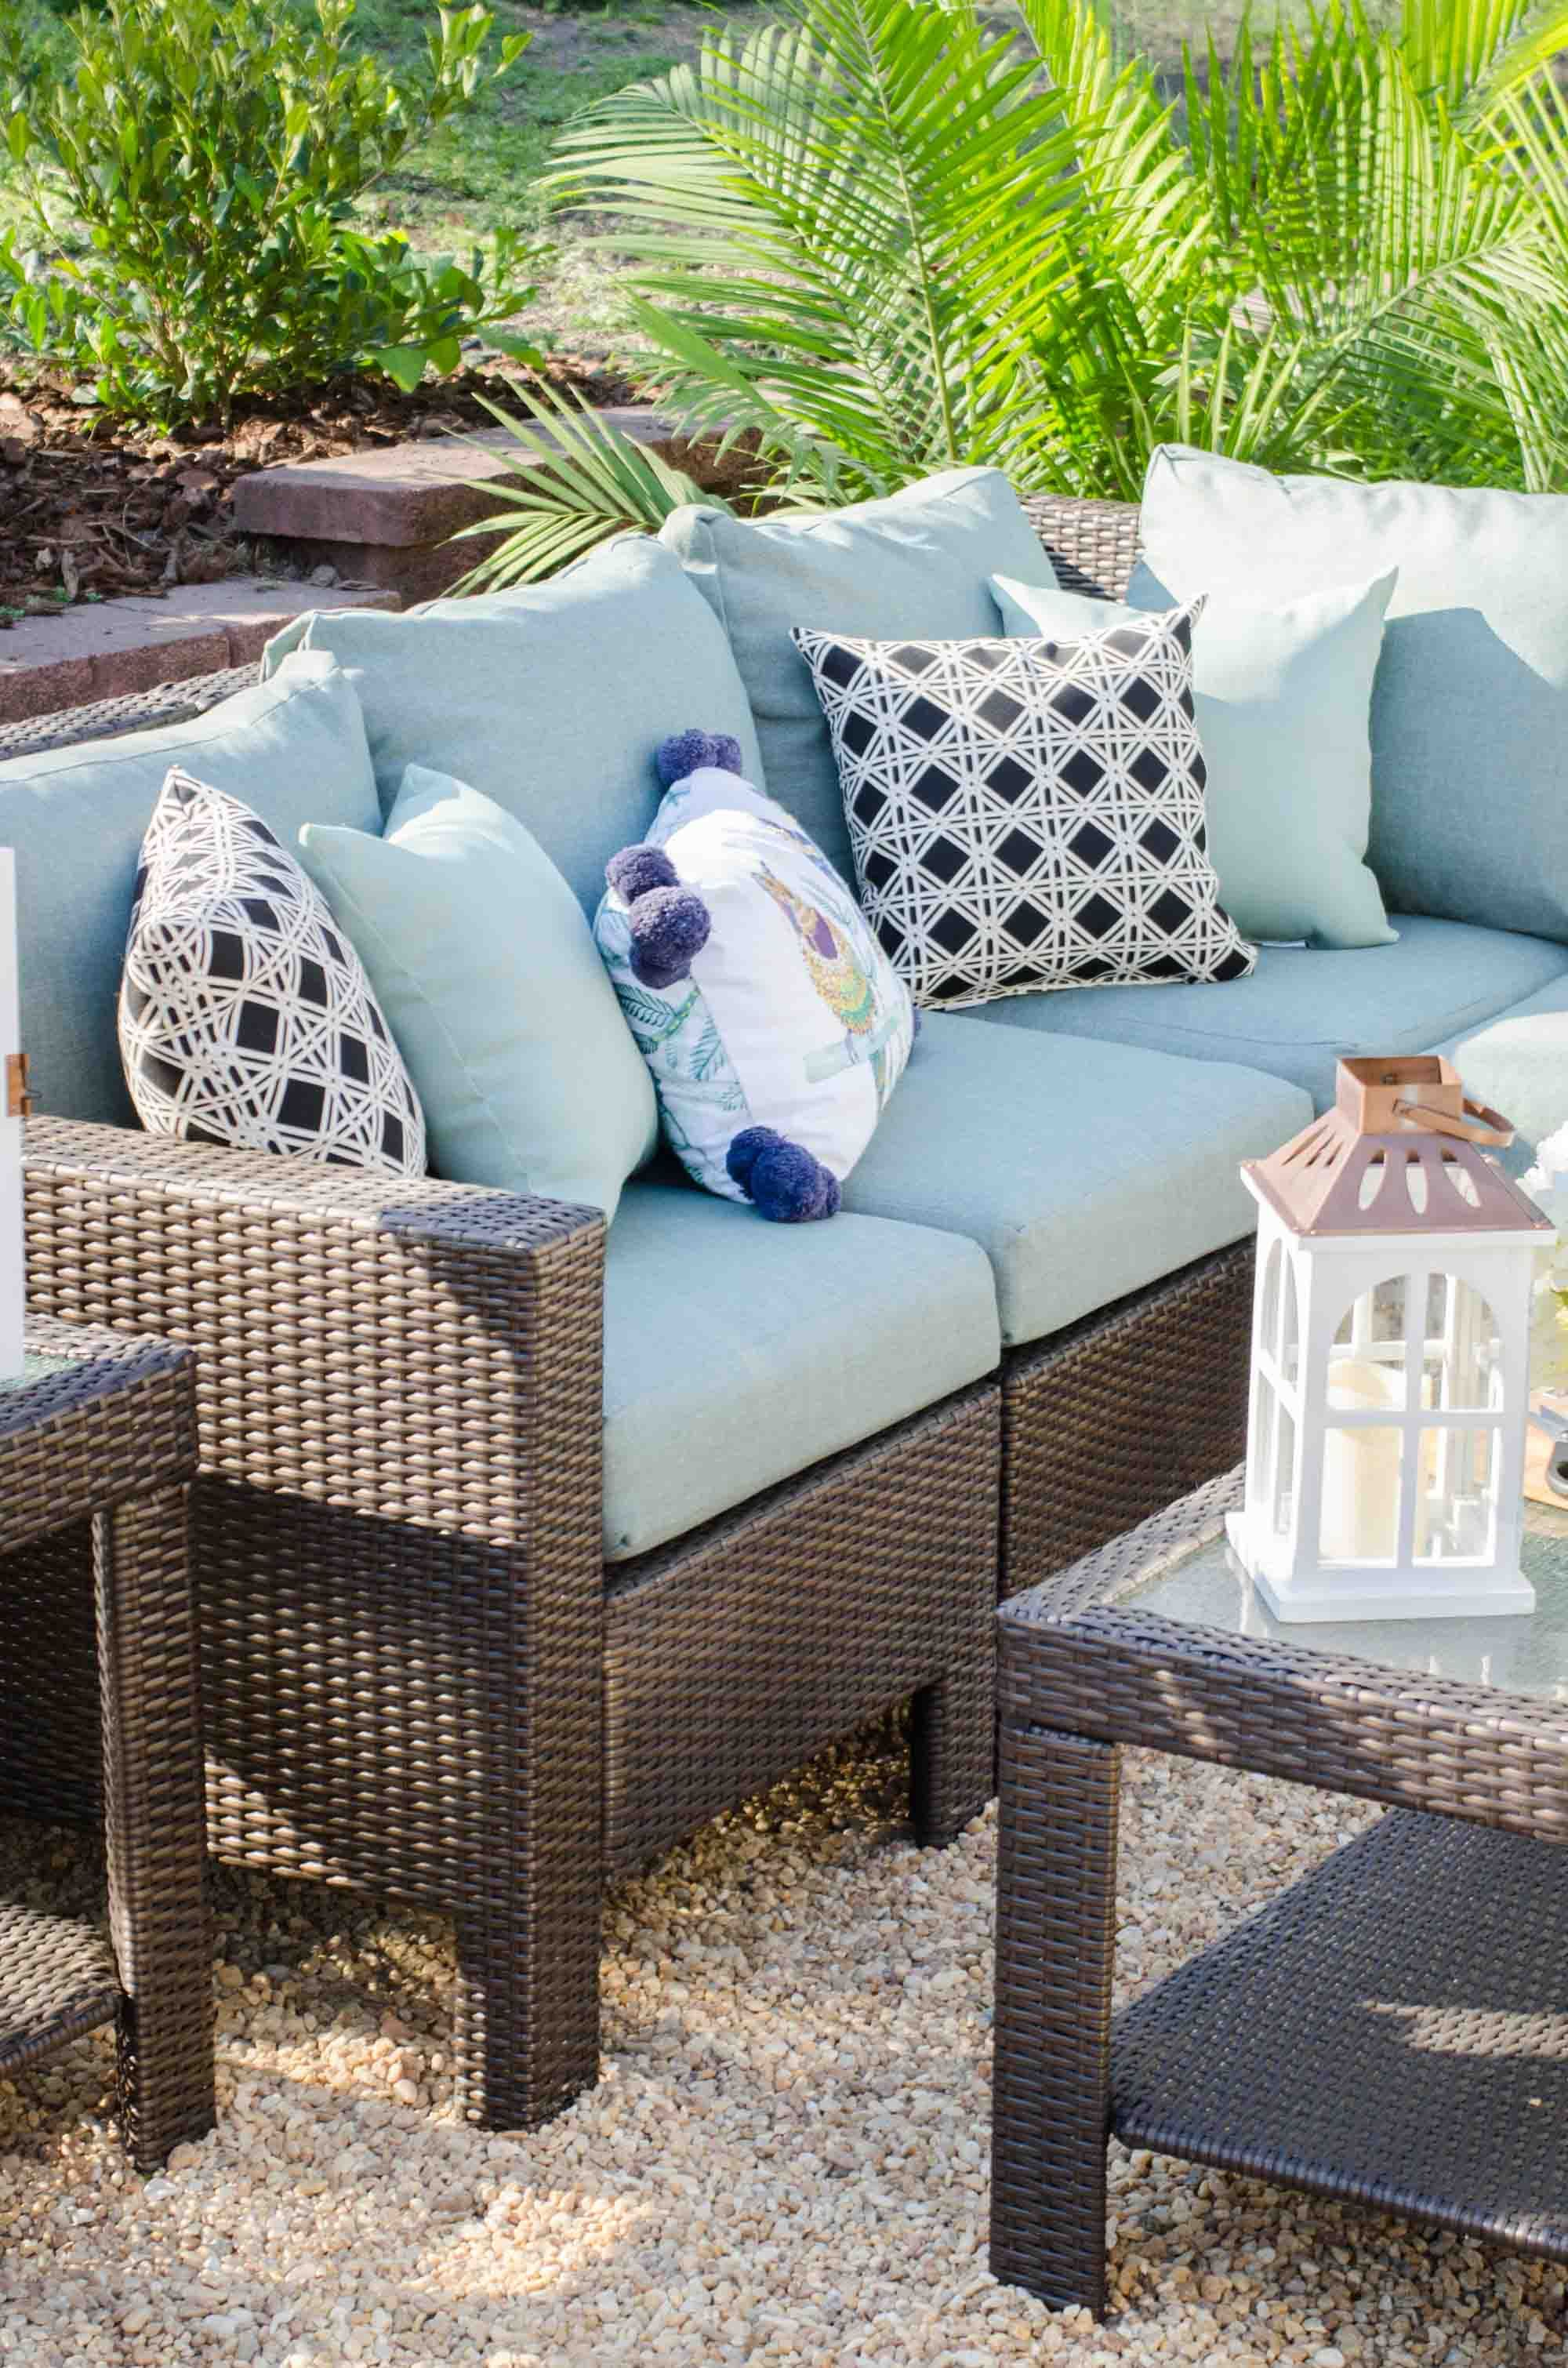 home depot wicker furniture. Brown Outdoor Wicker Furniture For A DIY Patio Idea, Design By @thouswellblog Home Depot I